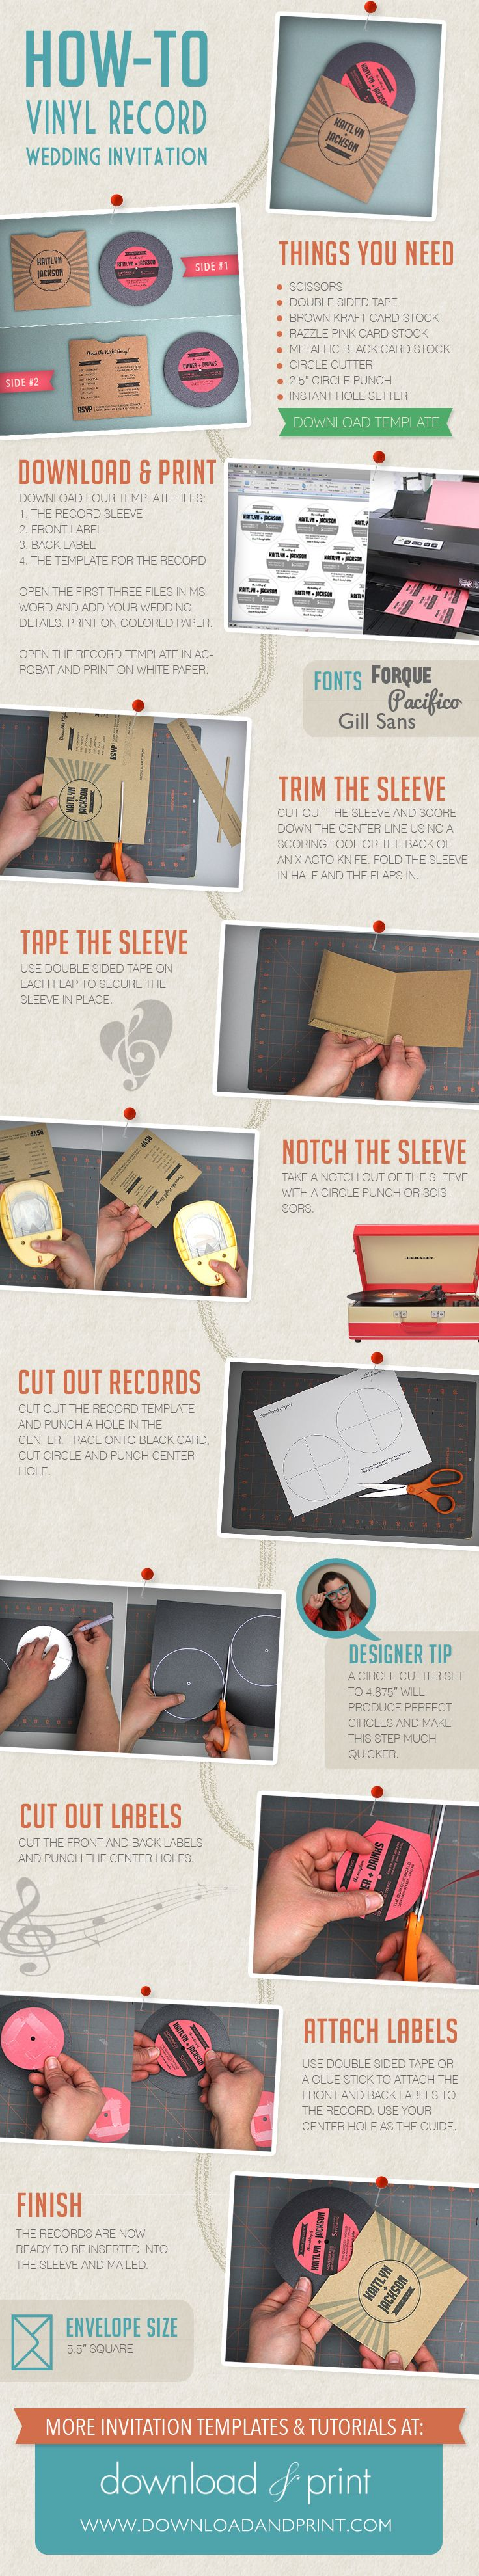 wedding renewal invitation ideas%0A HowTo DIY a vinyl record wedding invitation from  Downloadandprint